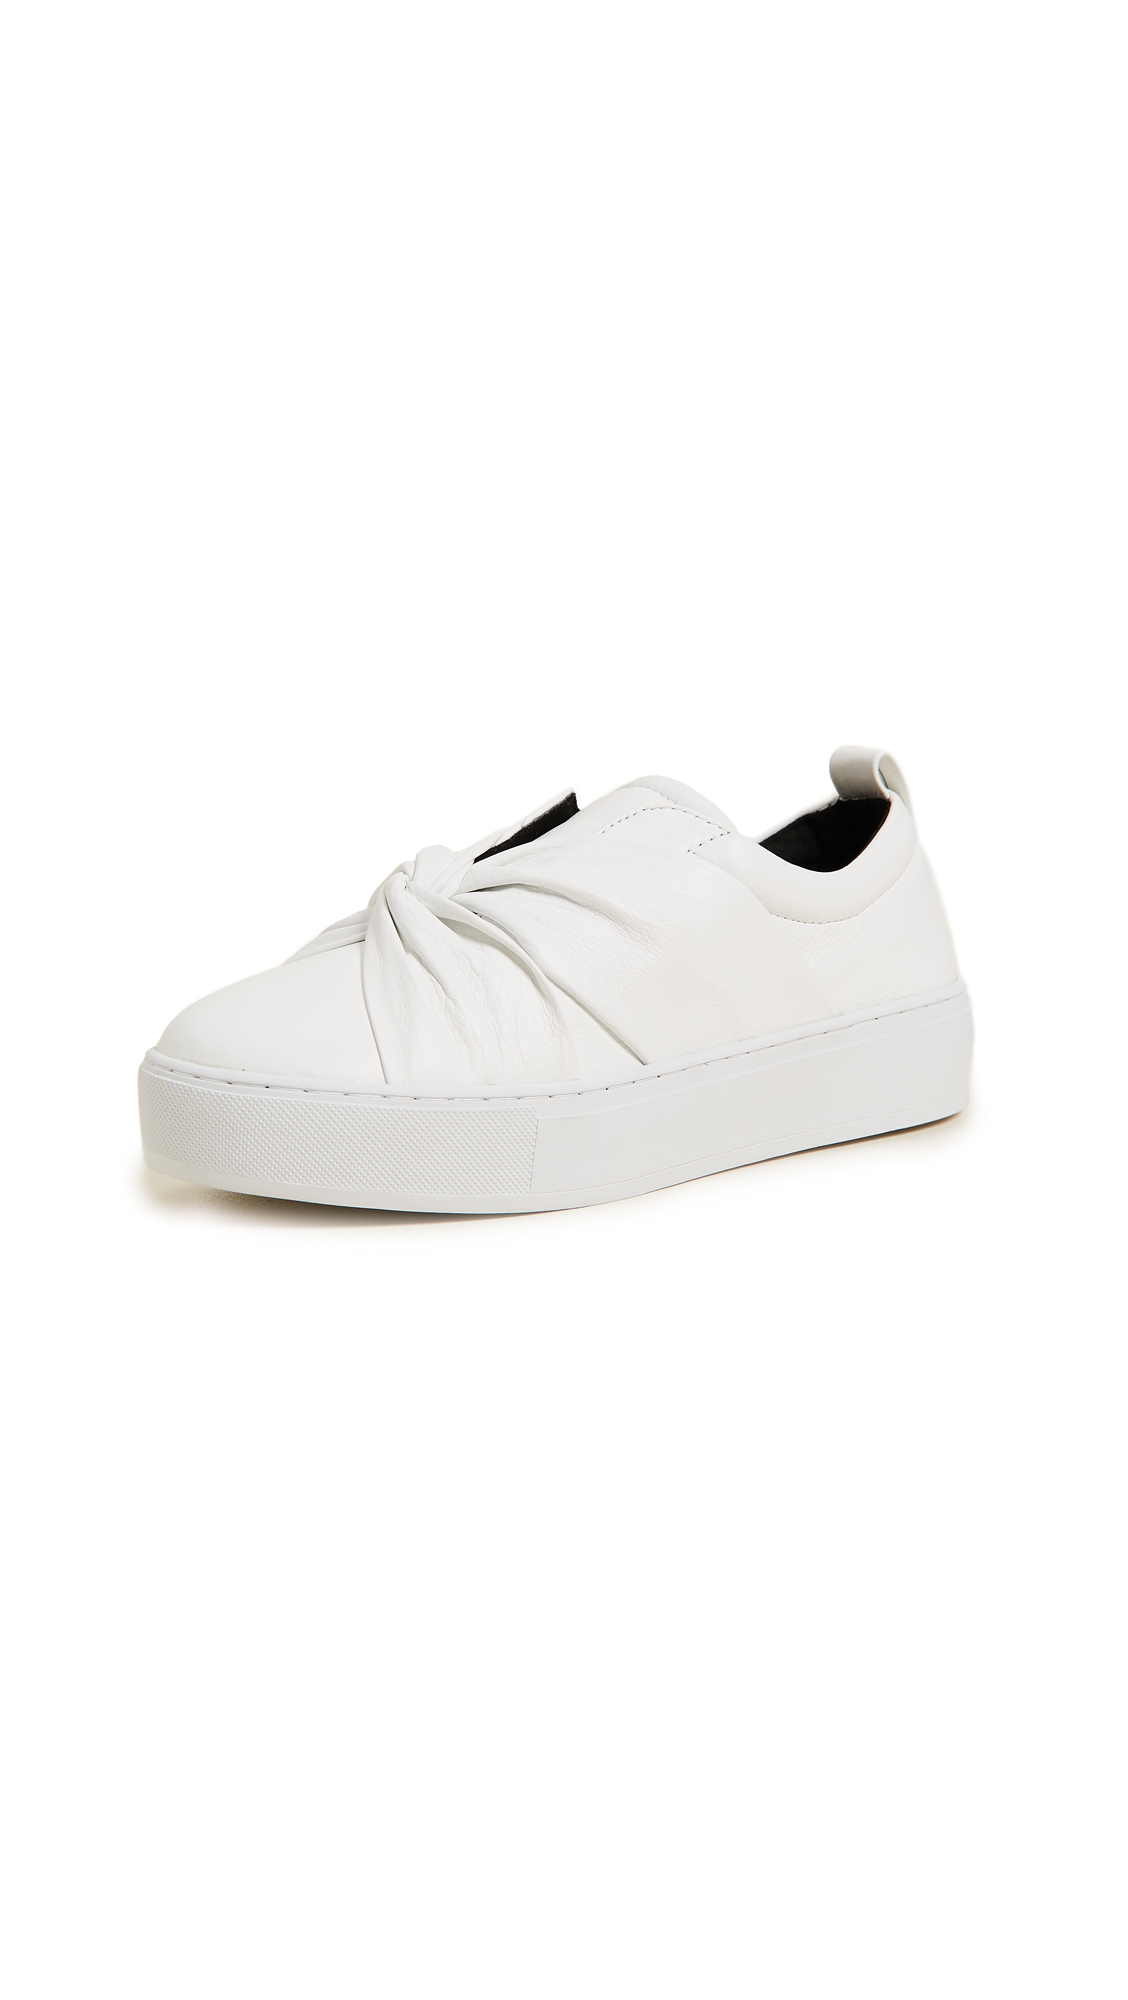 Rebecca Minkoff Nicole Knot Sneakers - Optic White